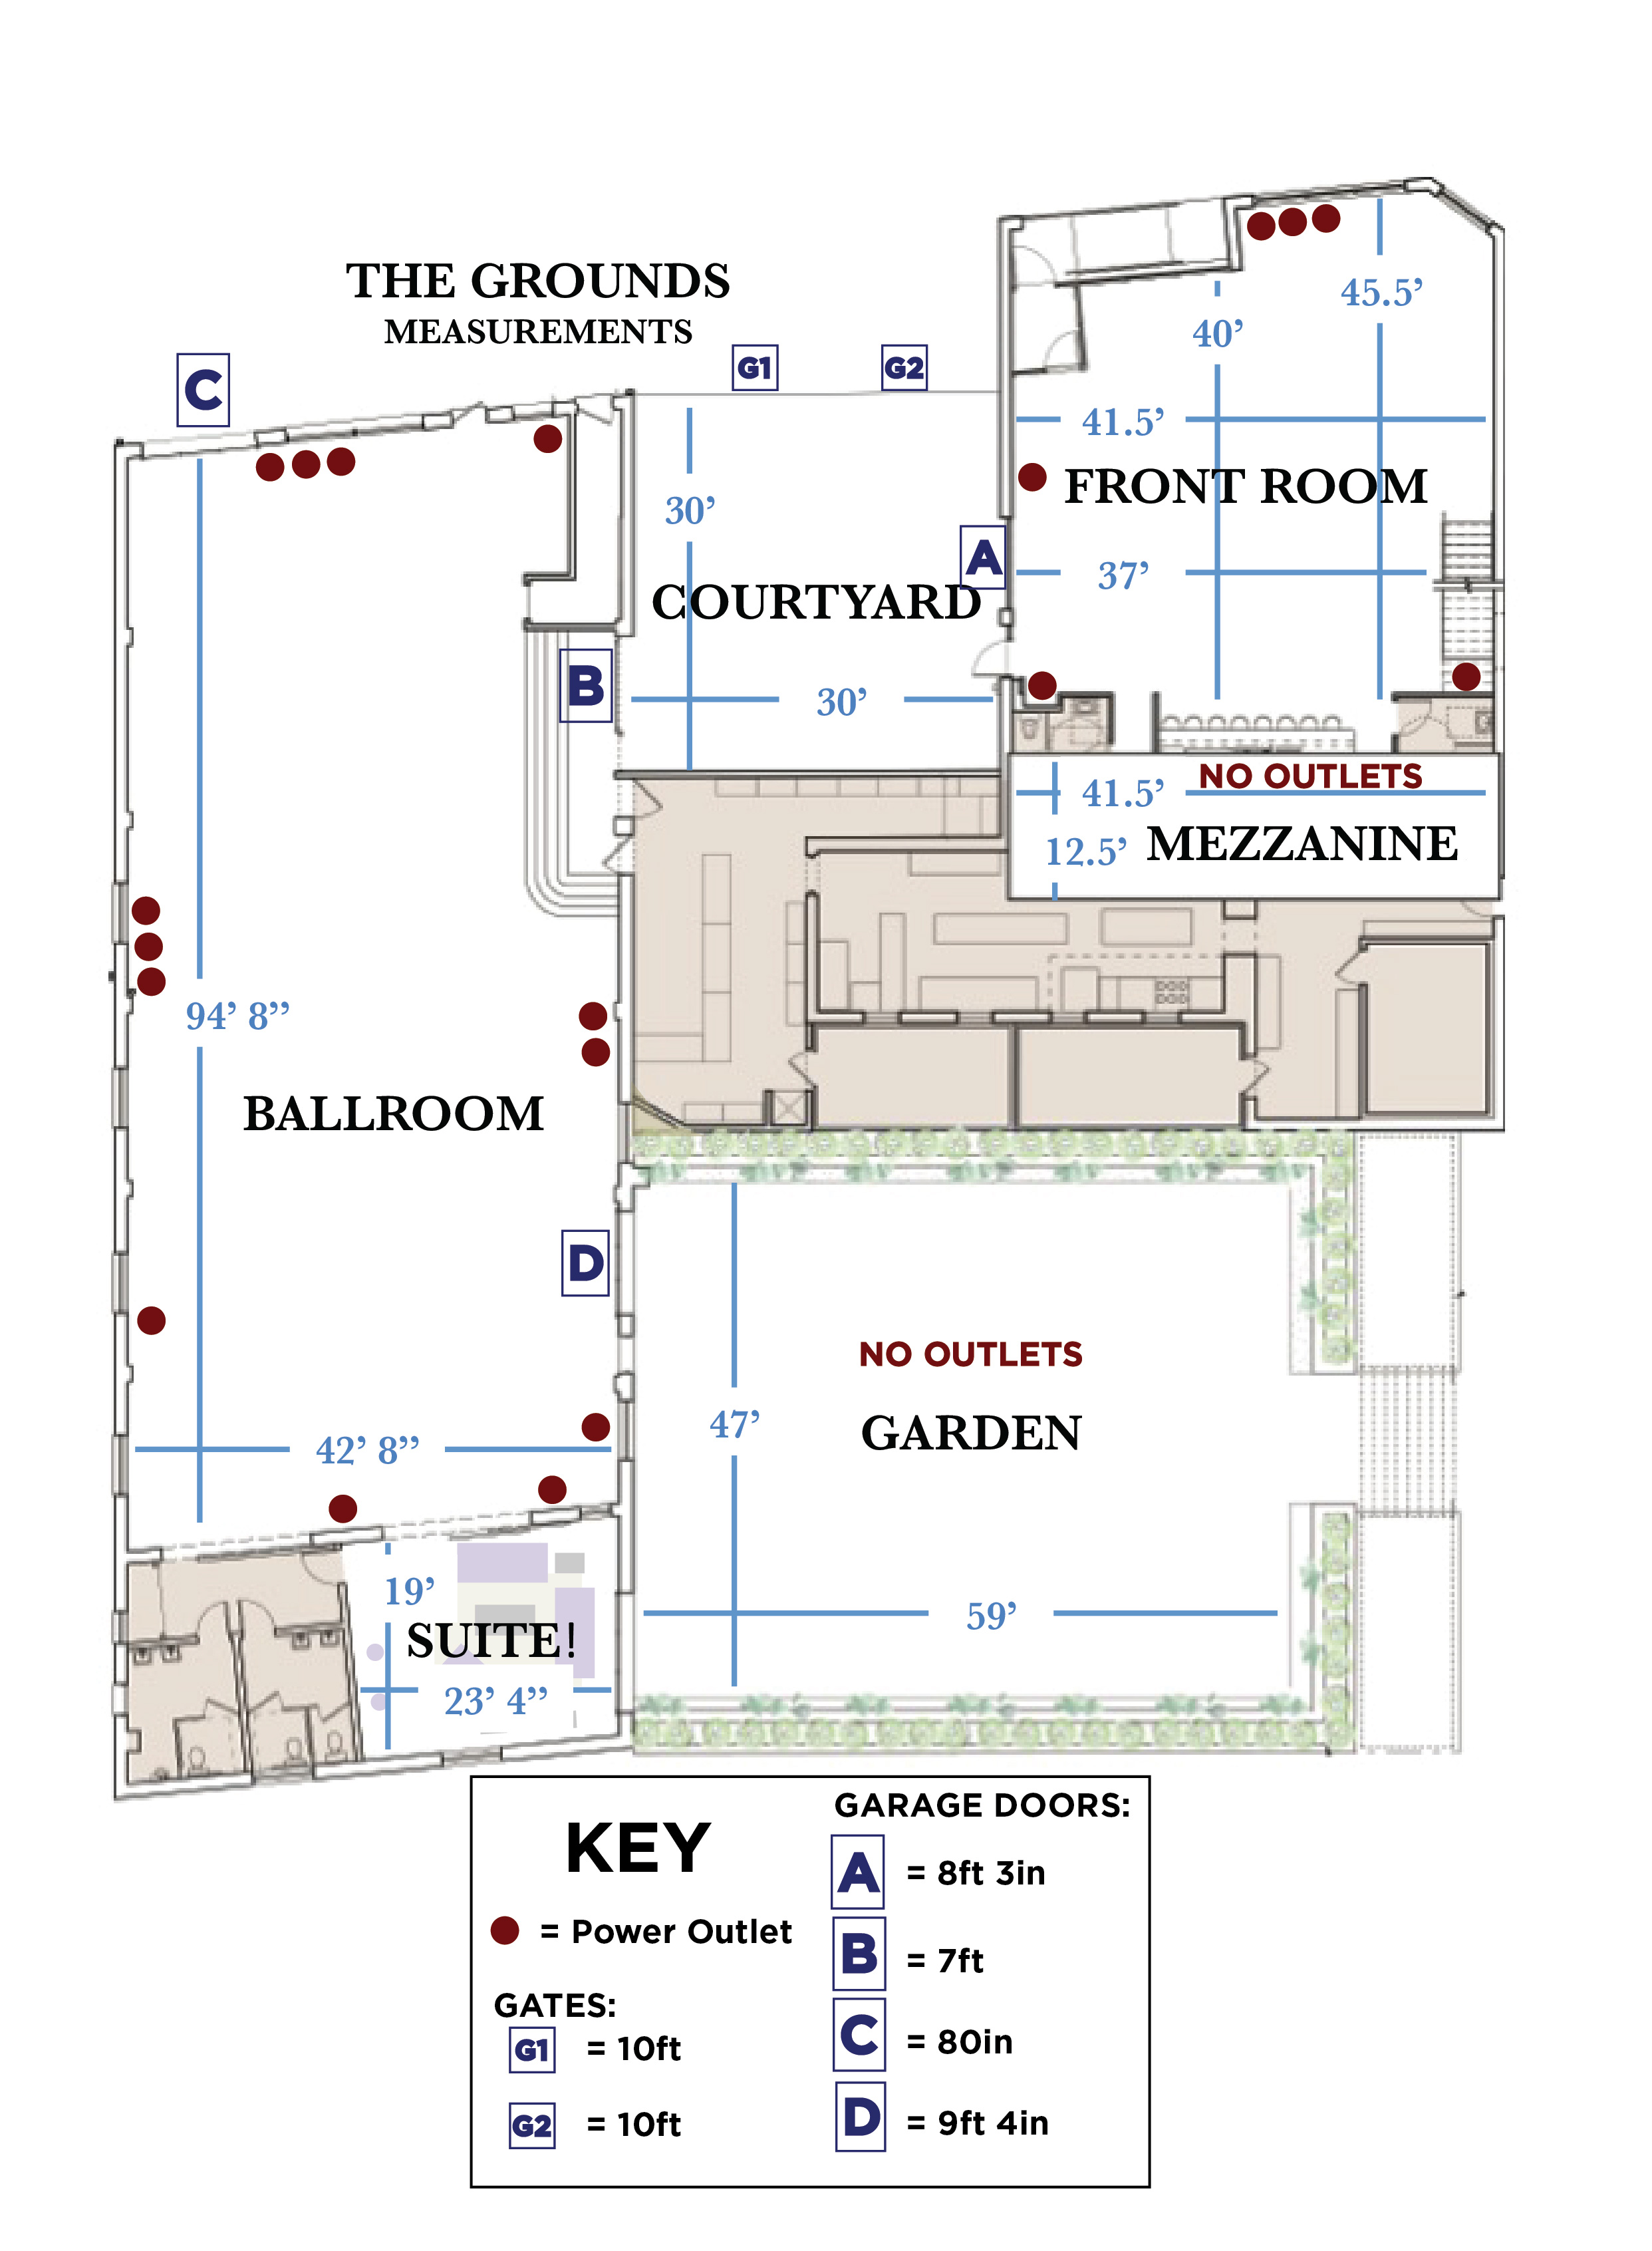 Outlet Layout-01.jpg